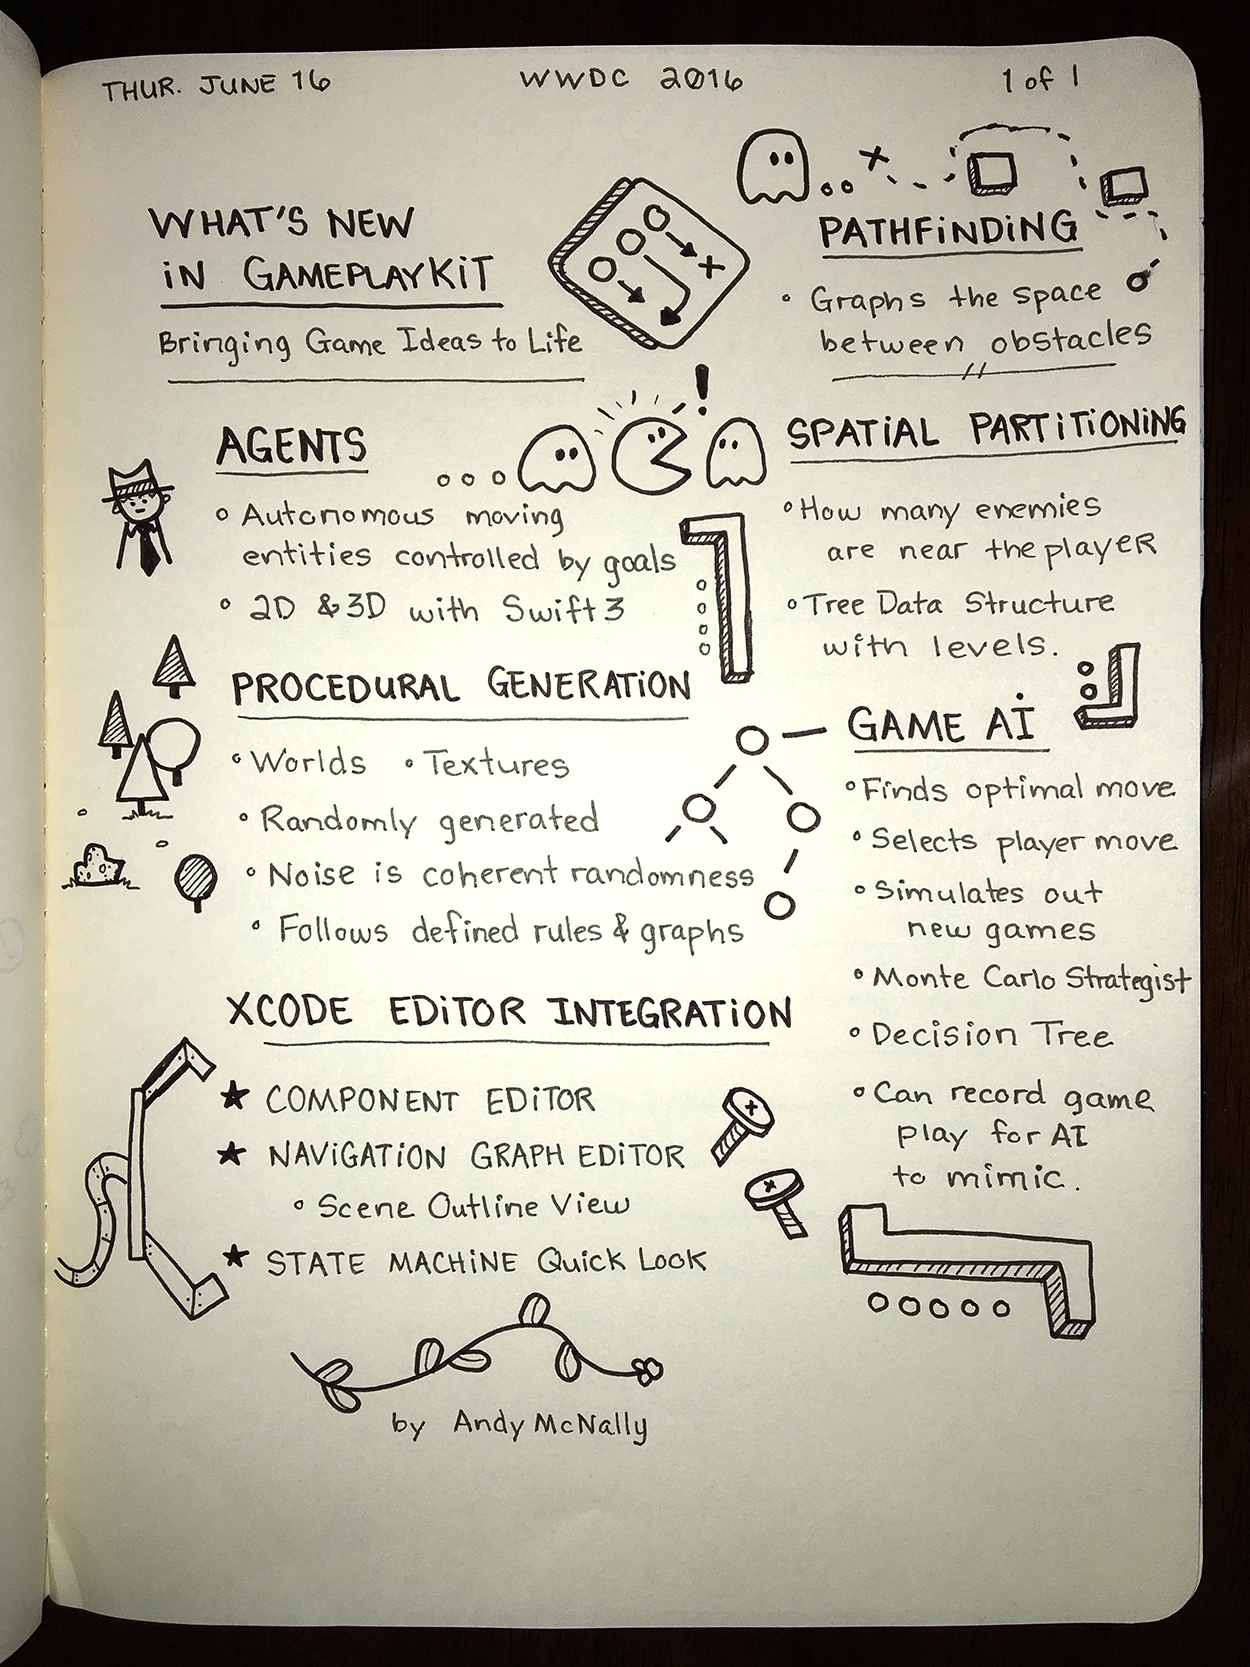 WWDC sketchnotes - What's New in GamePlayKit